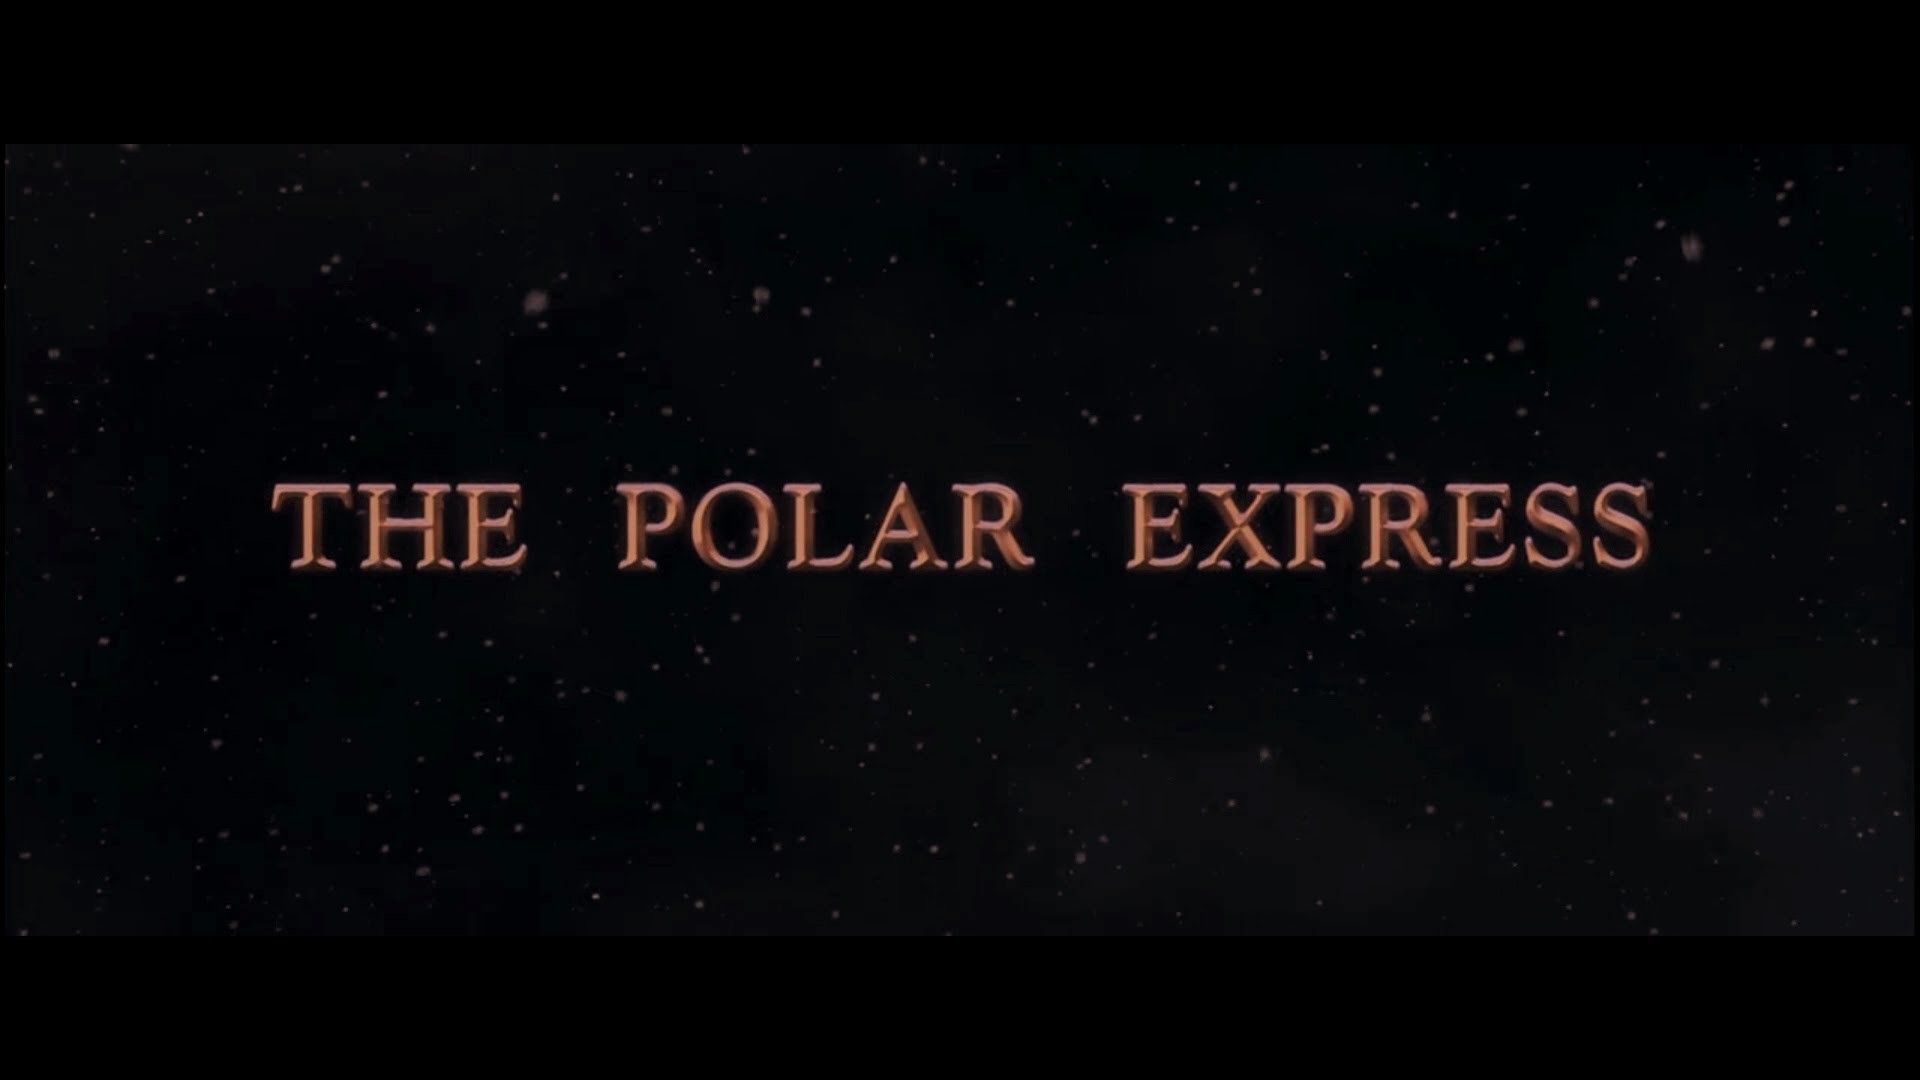 1920x1080 The Polar Express - Horror Trailer #1 (2014)